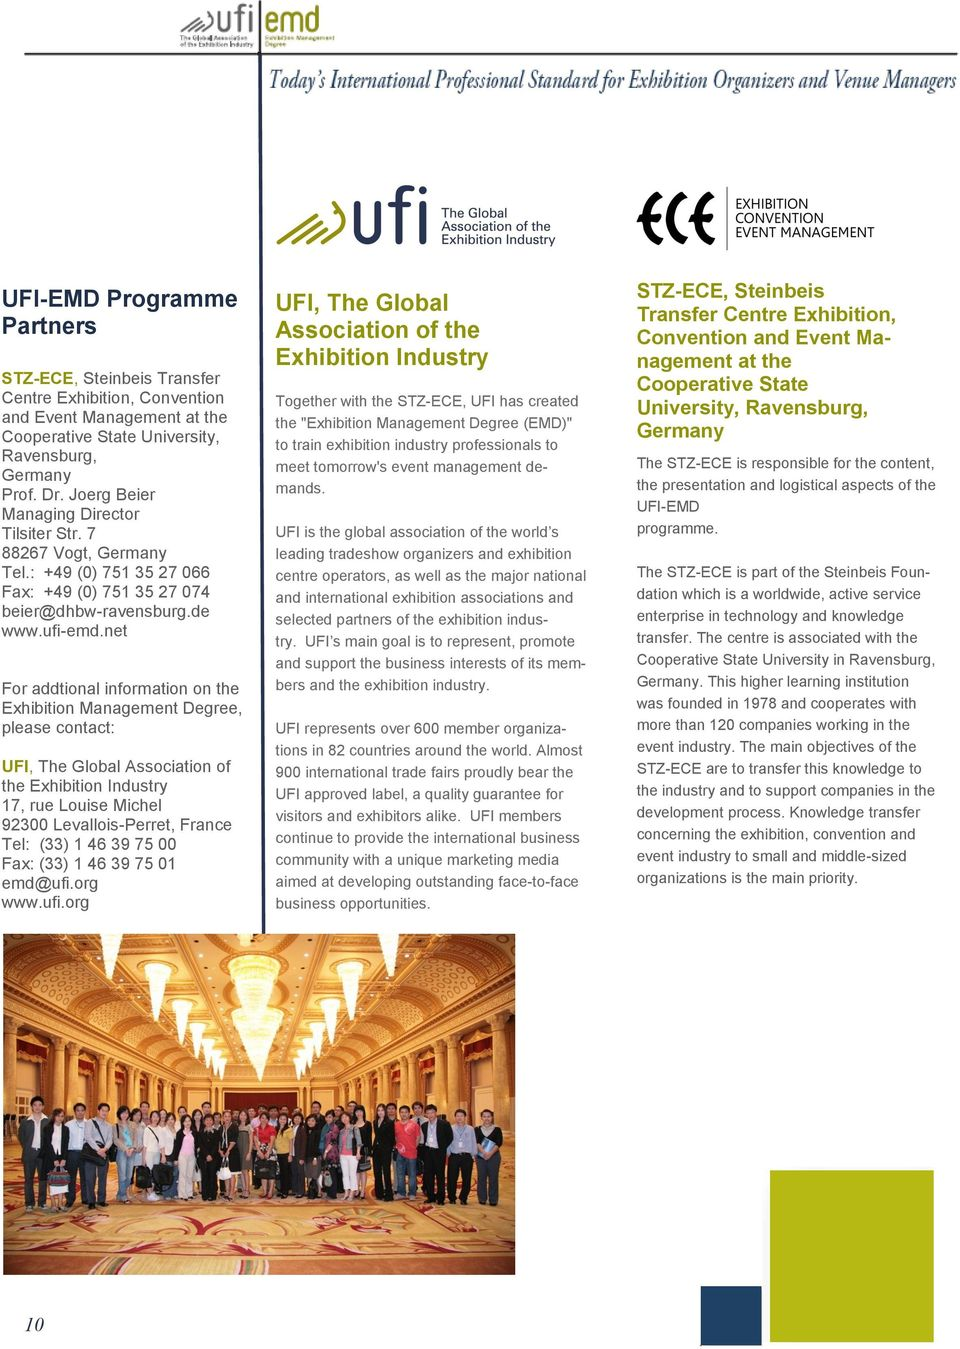 net For addtional information on the Exhibition Management Degree, please contact: UFI, The Global Association of the Exhibition Industry 17, rue Louise Michel 92300 Levallois-Perret, France Tel: